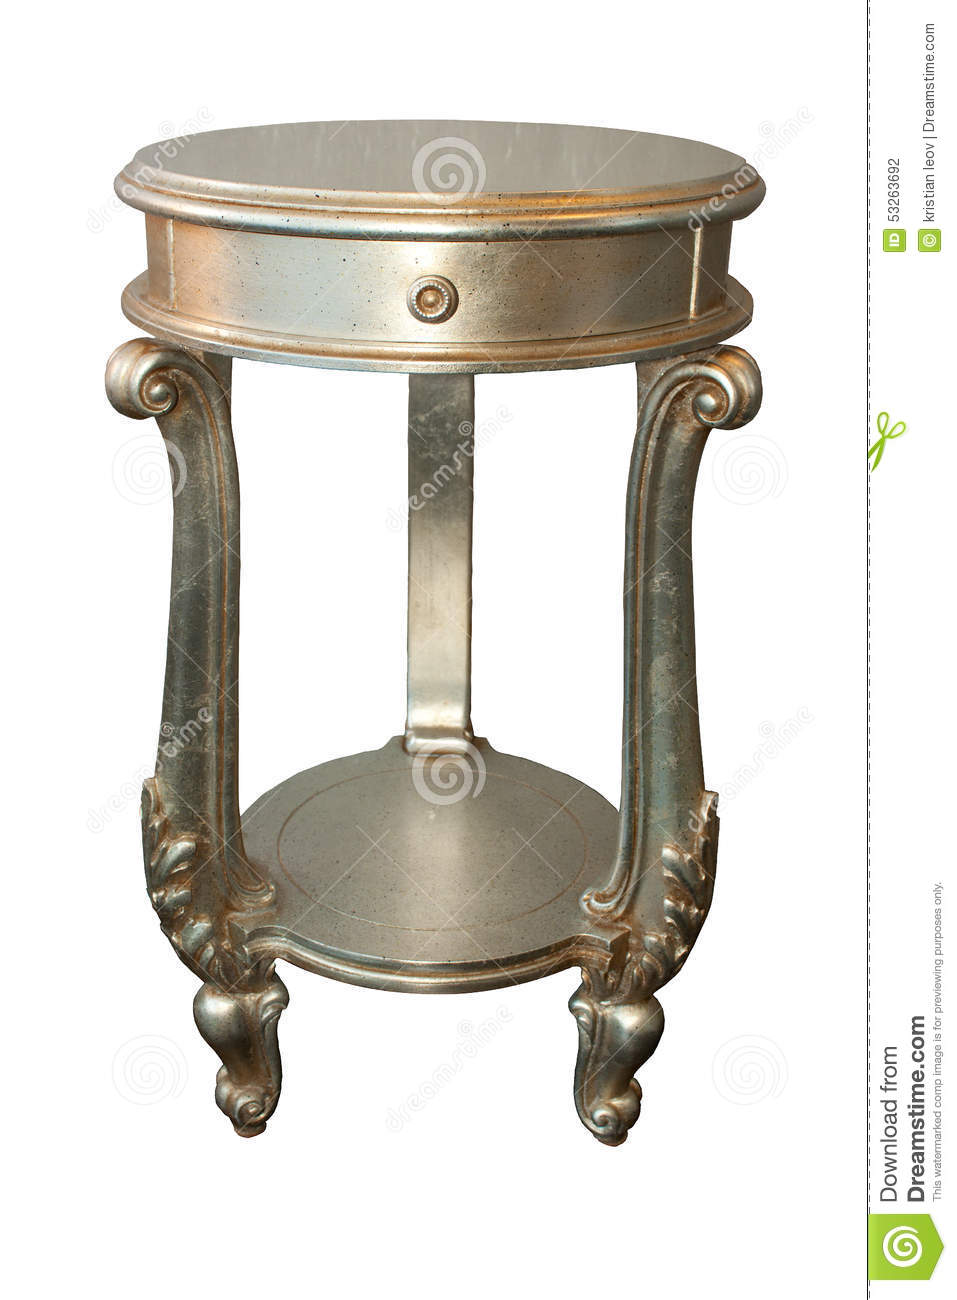 Royal Night Bed Side Table Of Wood With Silver Colour Design